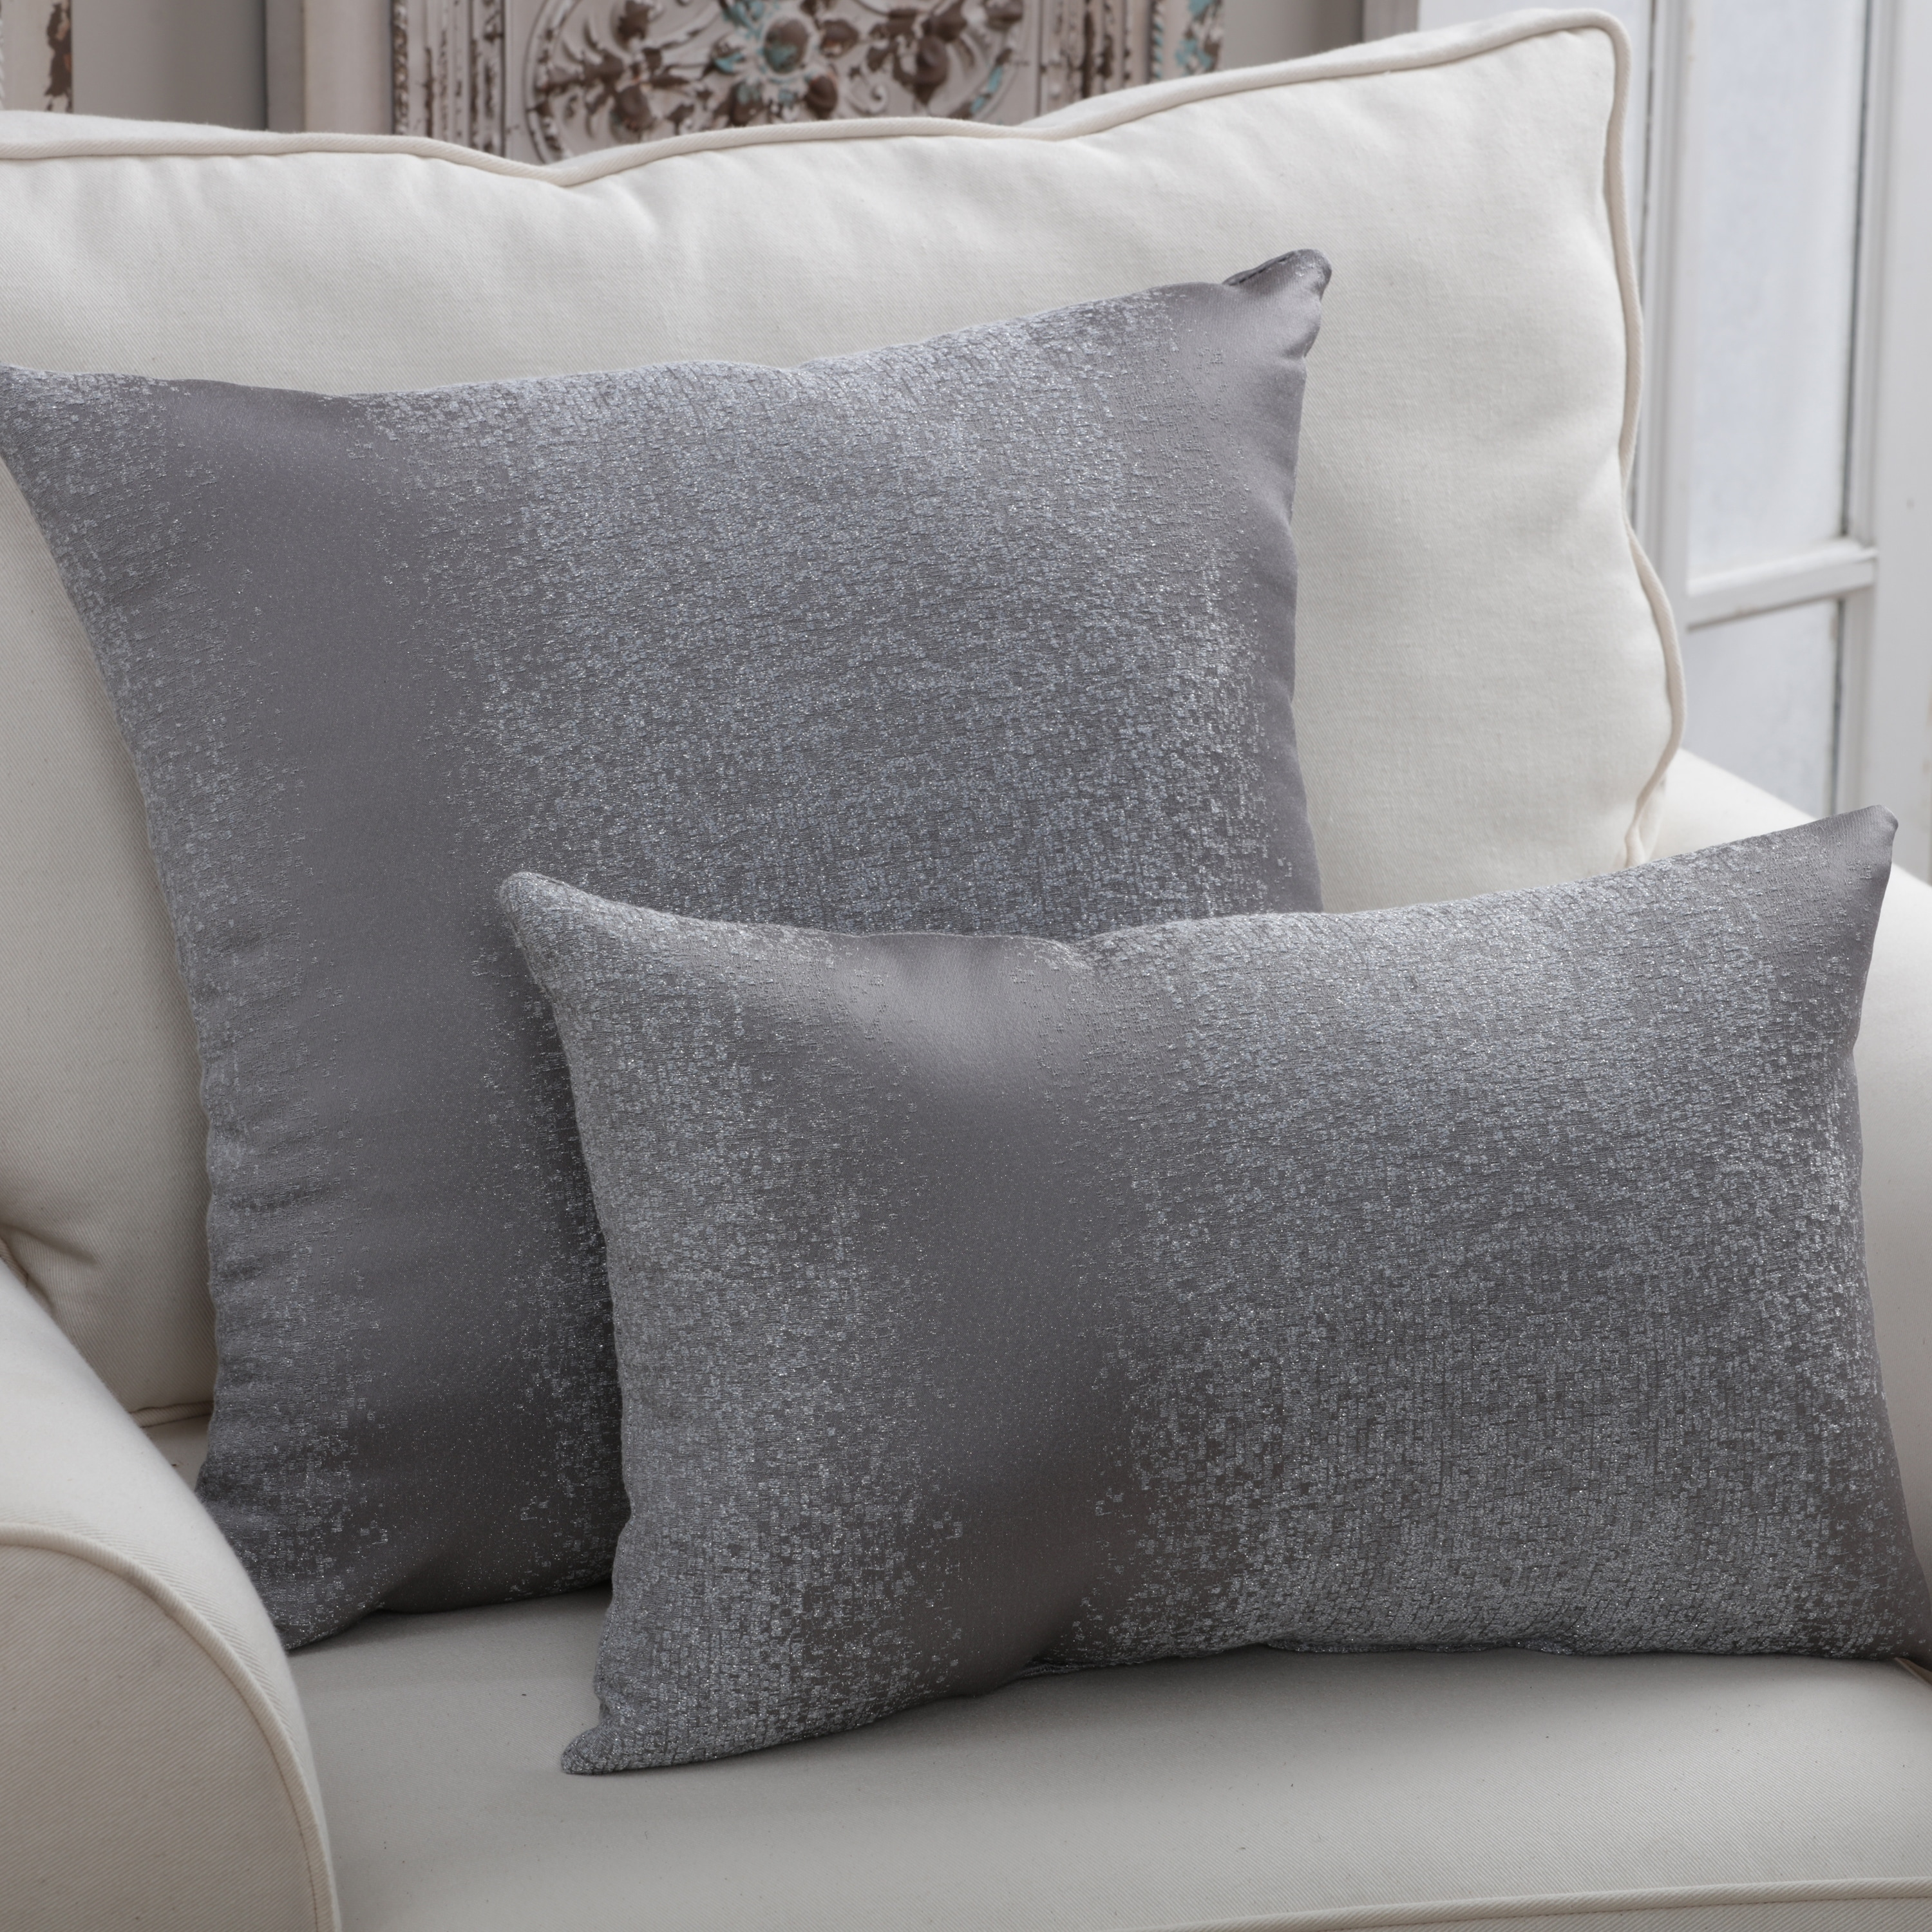 Www Rooms To Go Com: Pewter Sofa Pillows